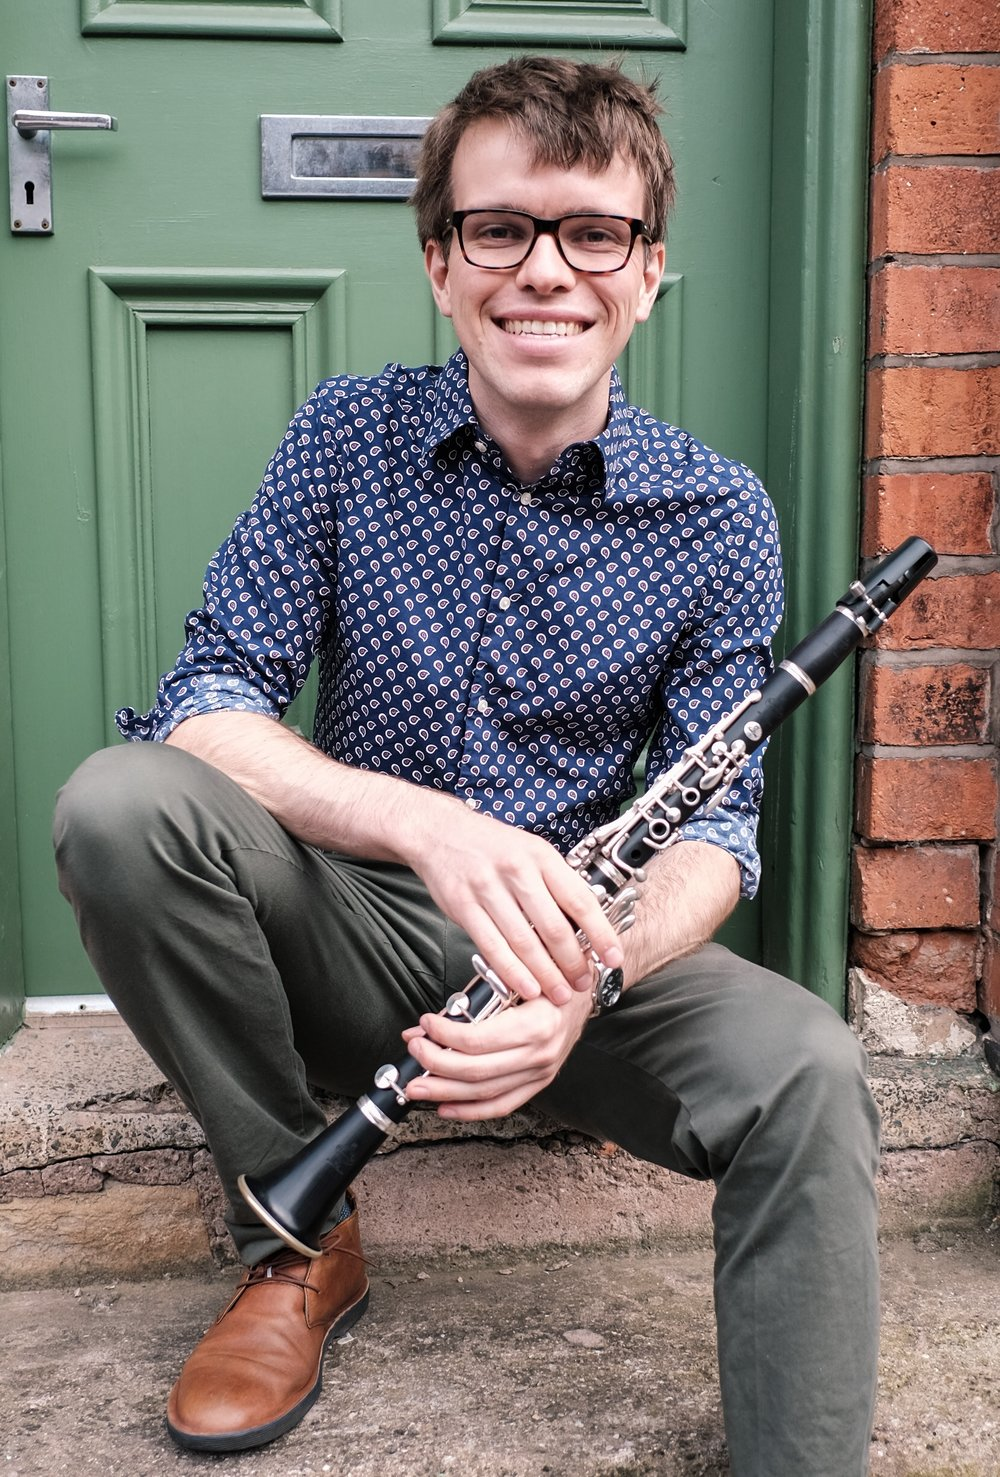 Luke Newby - After completing an undergraduate degree at the University of the Witwatersrand in 2012, Luke moved to the UK and completed an MMus (Performance and Pedagogy) and MMus (Performance) studying with Jo Patton and Mark O'Brien. During his time at the Conservatoire, Luke was awarded a place on the CBSO training scheme, competed as a finalist in the woodwind prize and was awarded the Town Hall Symphony Hall Prize with the Verbunkos Trio.As an advocate of new music Luke has given several premieres in the UK and South Africa and always strives to perform challenging and exciting repertoire. Luke is also a passionate educator and currently works as a Teaching Artist with Opera North alongside projects with the Philharmonia Orchestra Education Department and Young Composers Project.